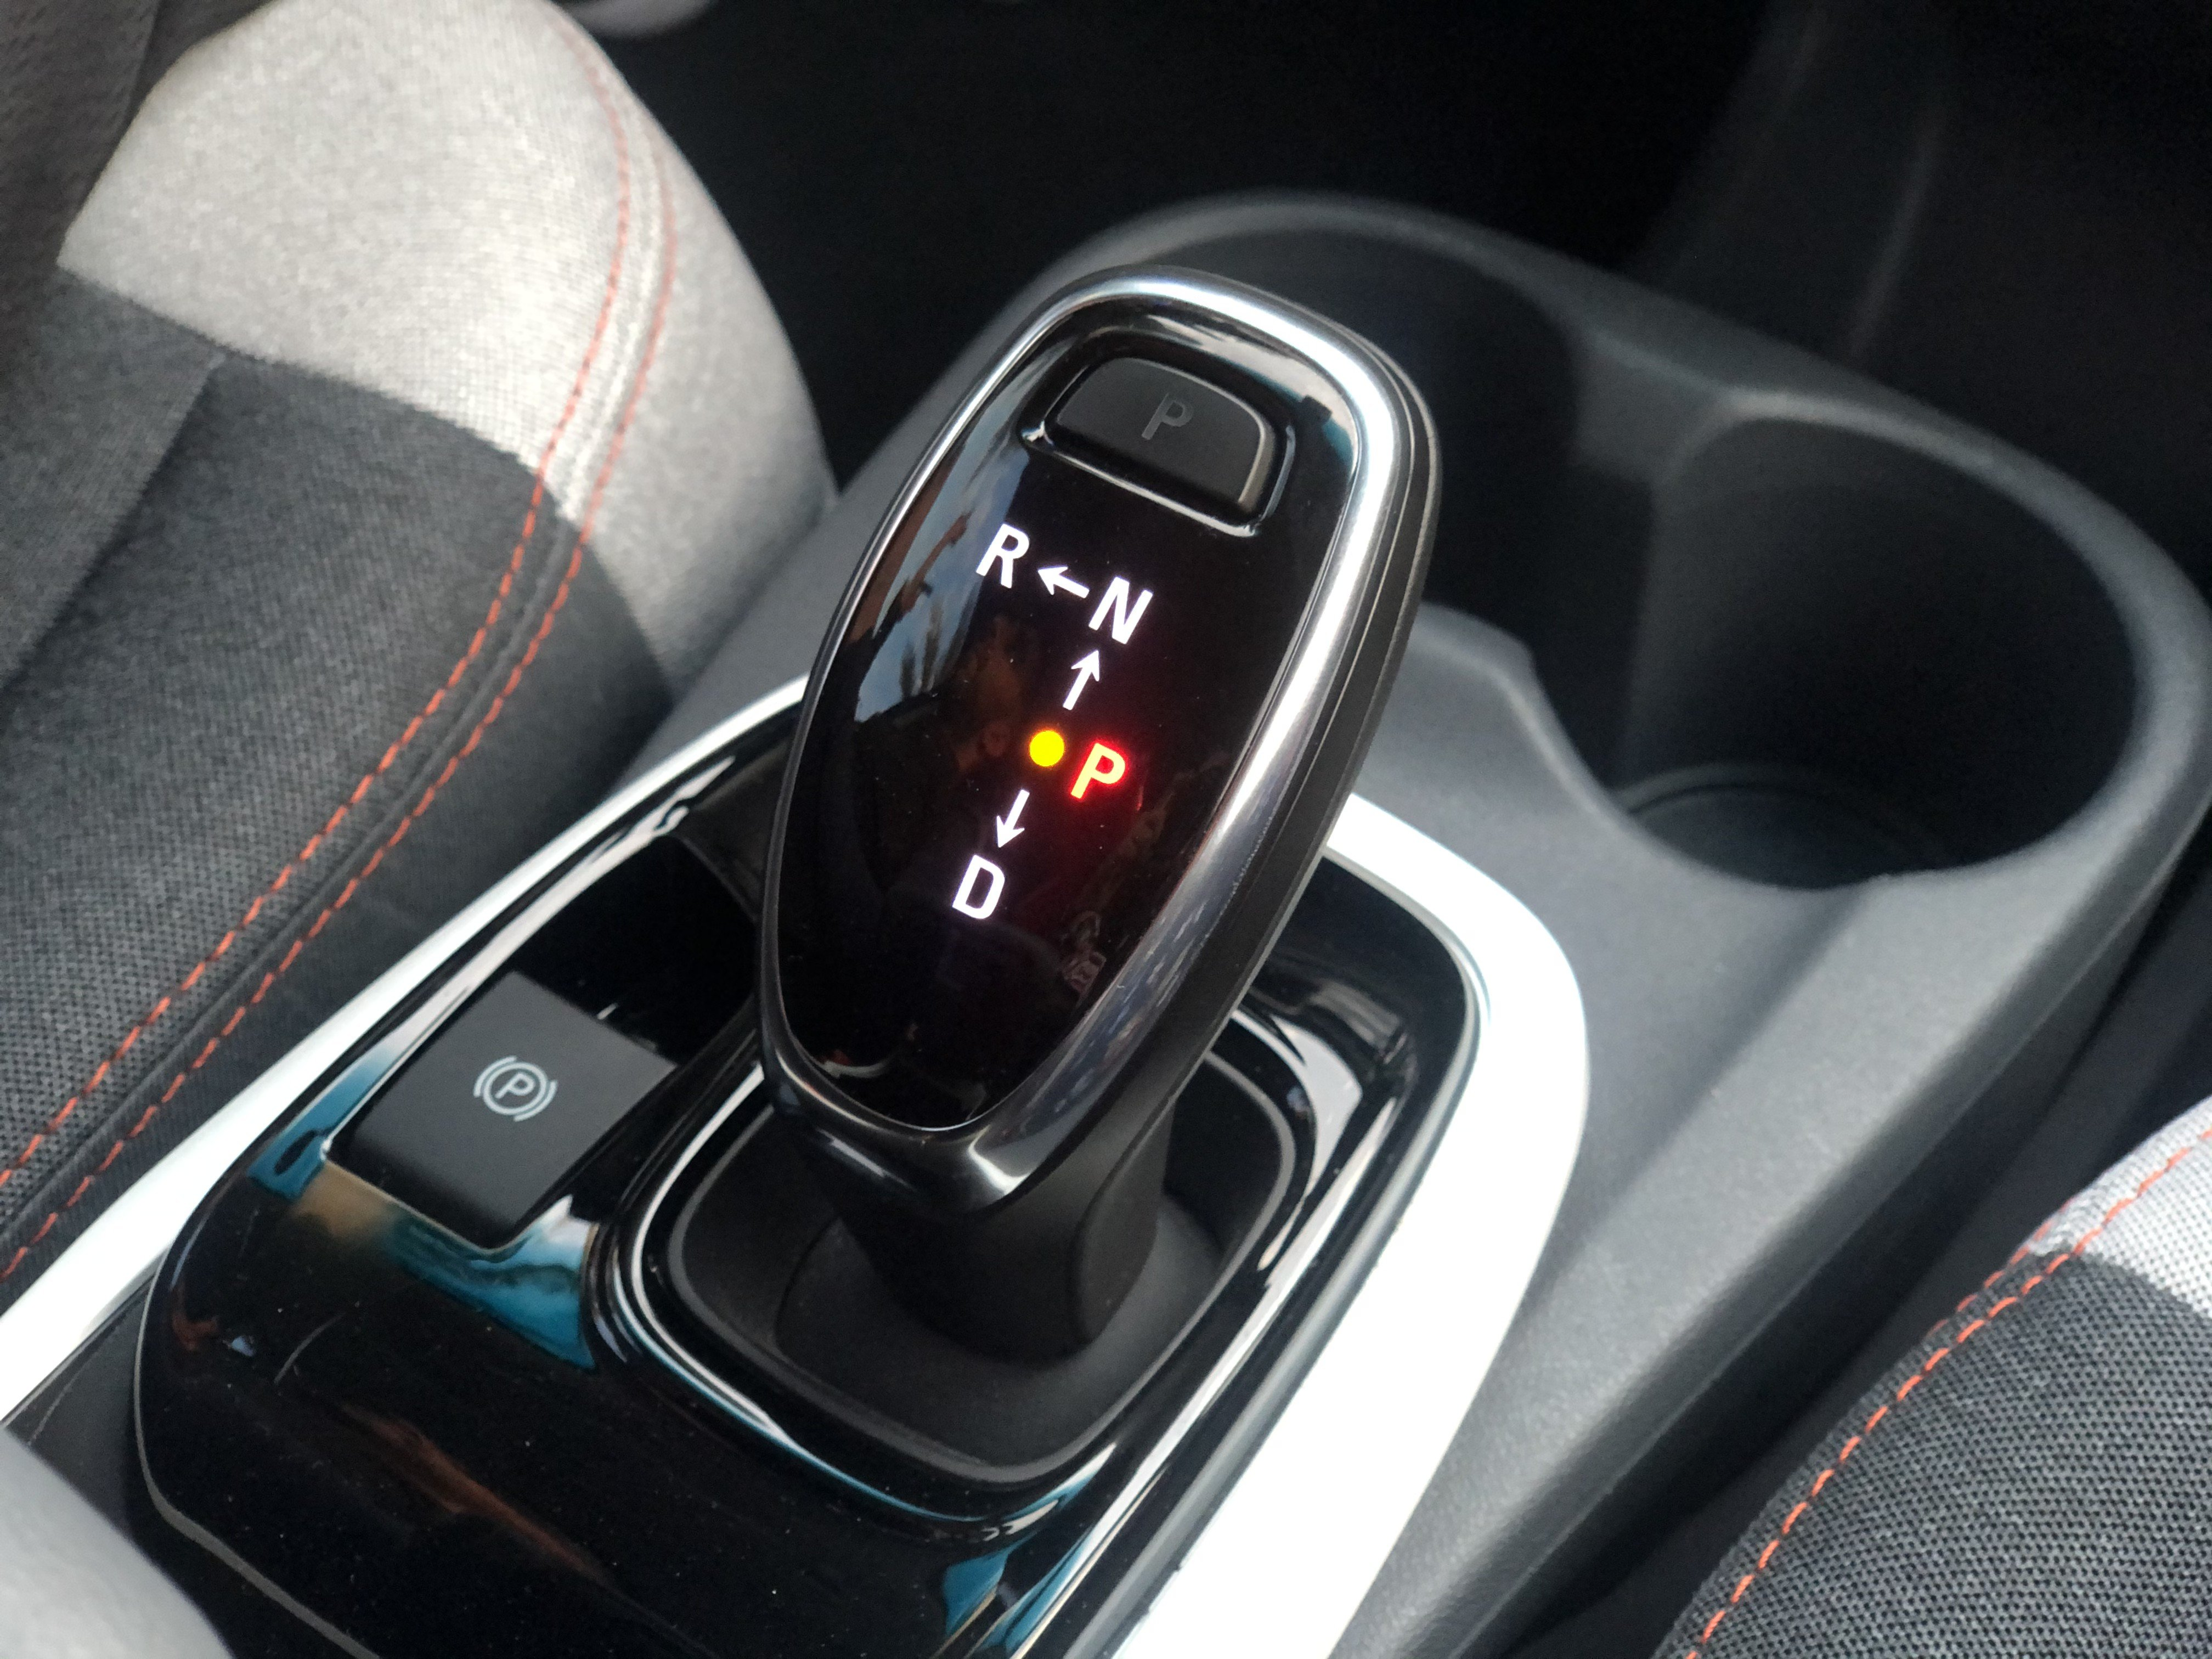 2019 CHEVROLET BOLT EV Gear